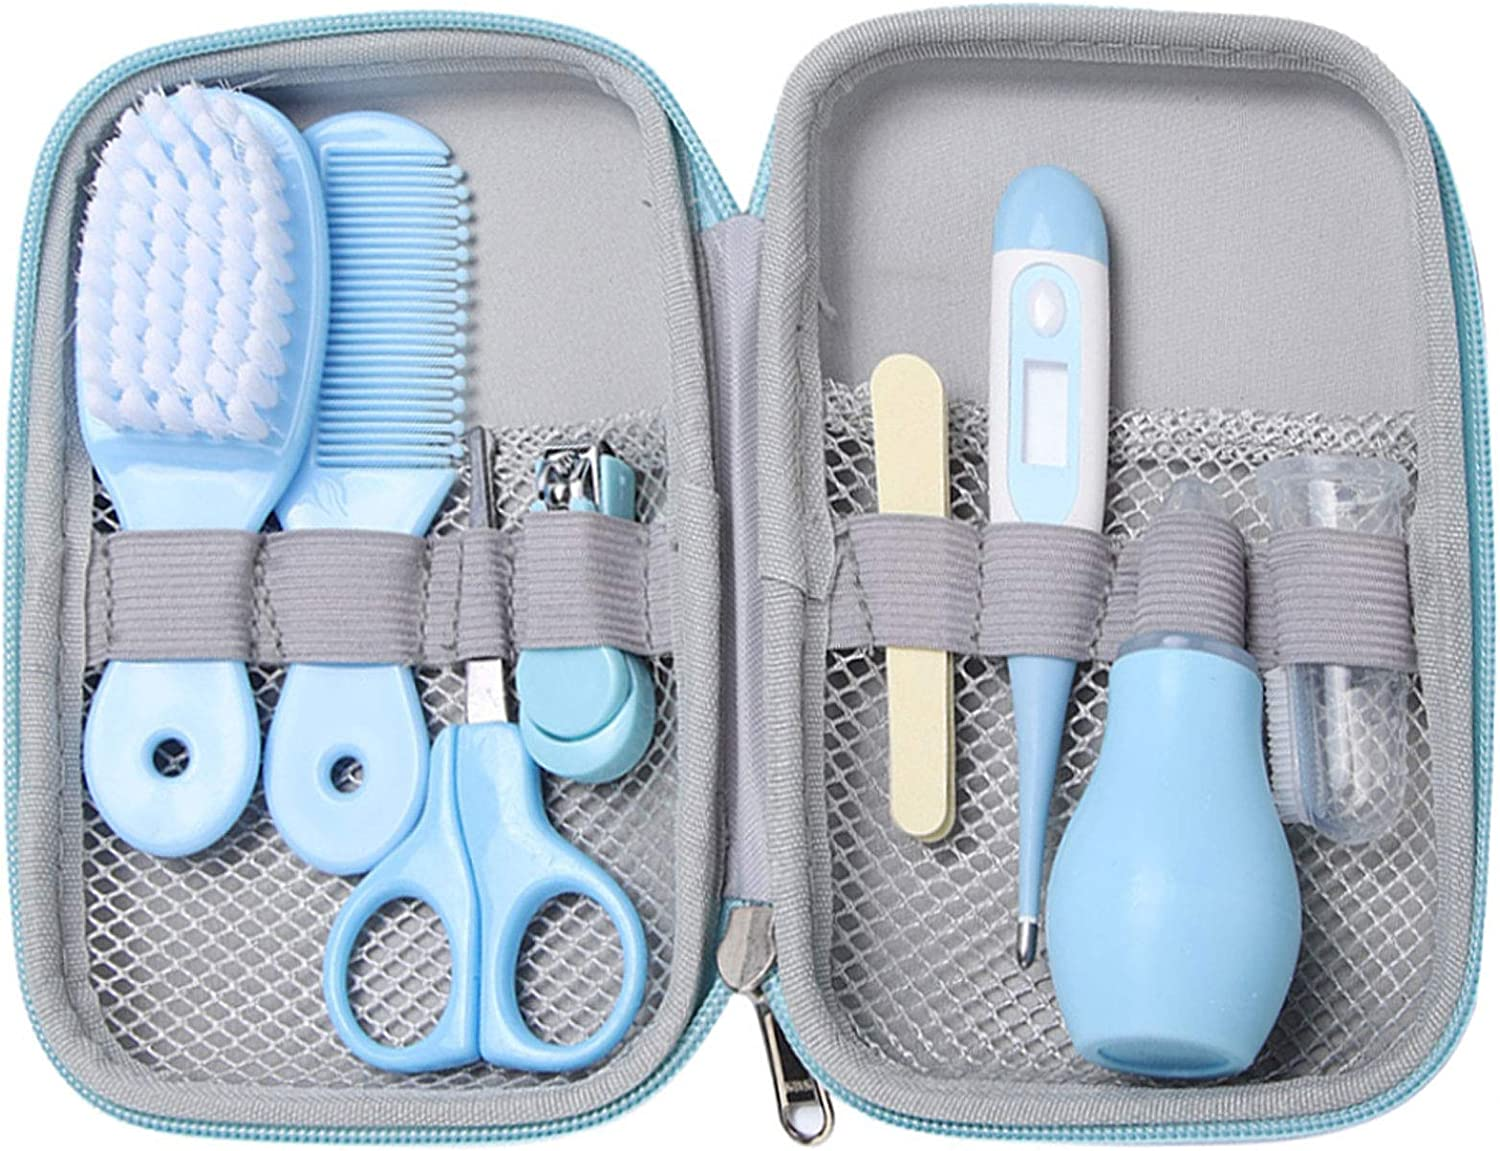 8pcs Baby Daily Care Kit, Convenient Baby Healthcare and Grooming Kit, Including Nail Scissors Nail Clipper Hair Brush Comb Nose Cleaner Finger Toothbrush Manicure Care Kit